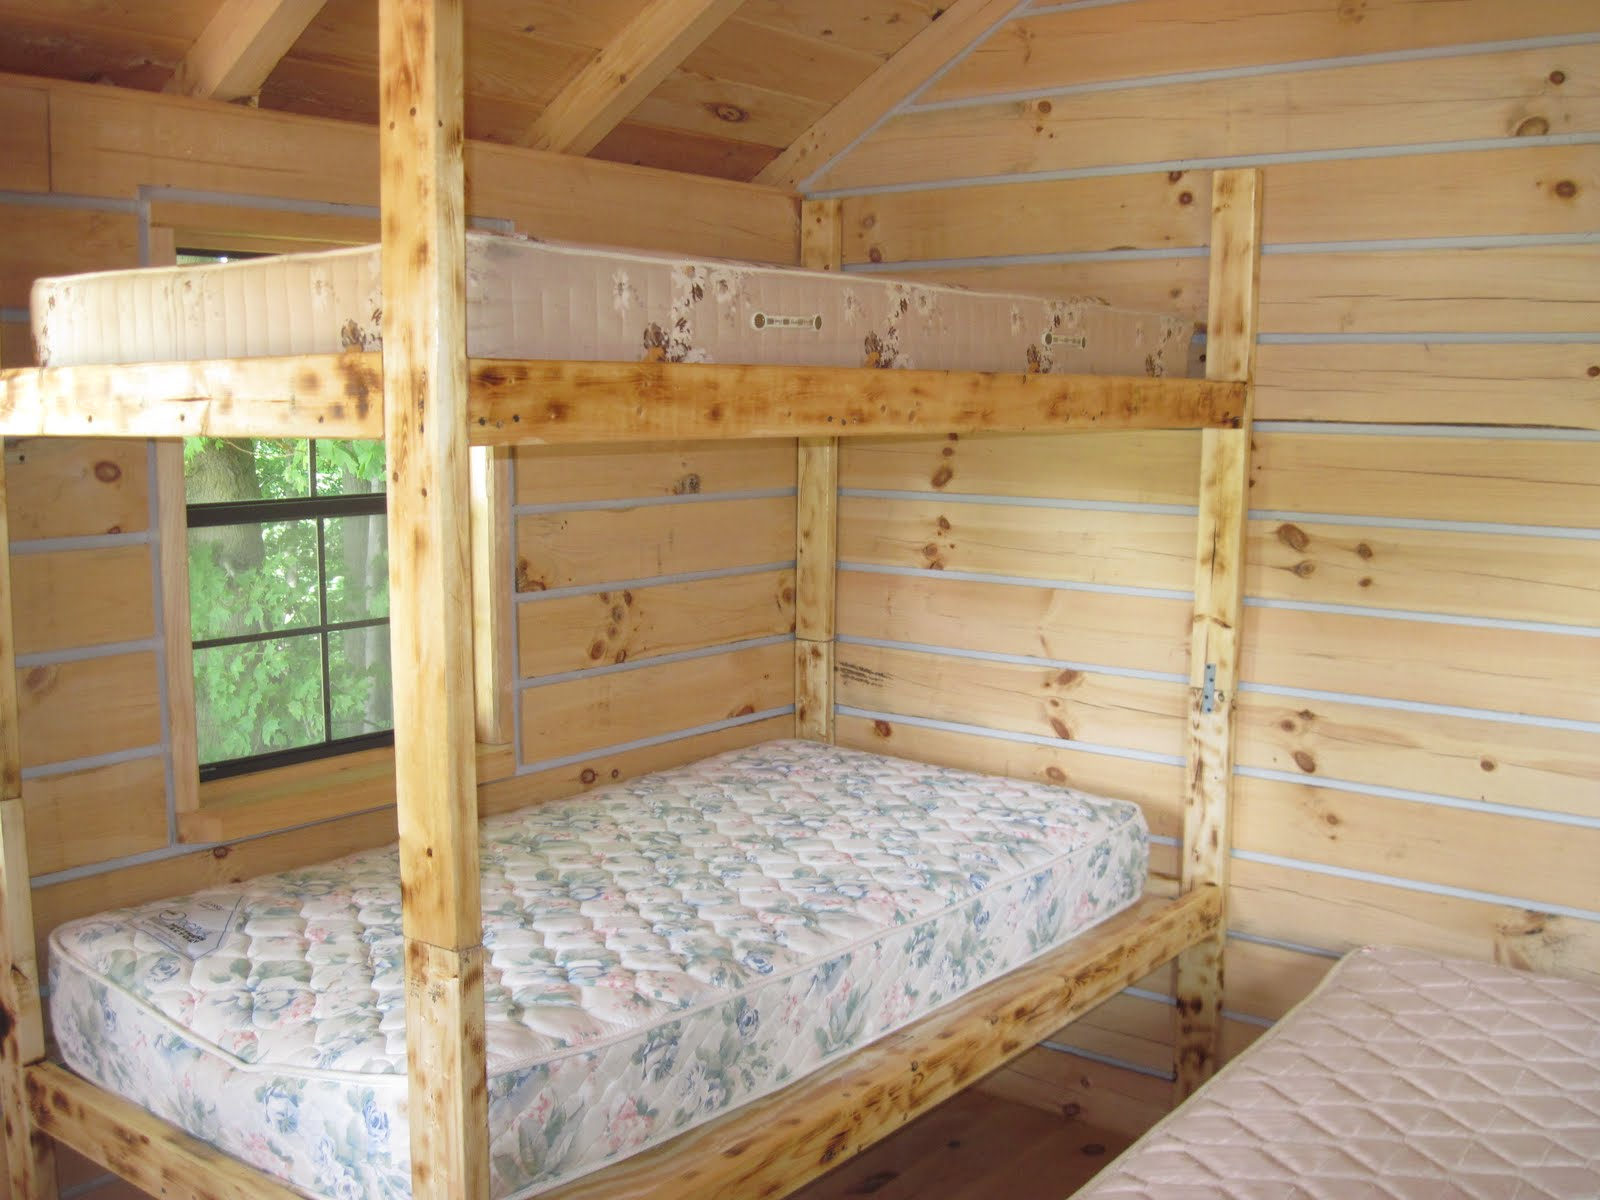 Pdf Diy Bunk Bed Plans Queen Download Built In Bookshelves Plans Woodworktips